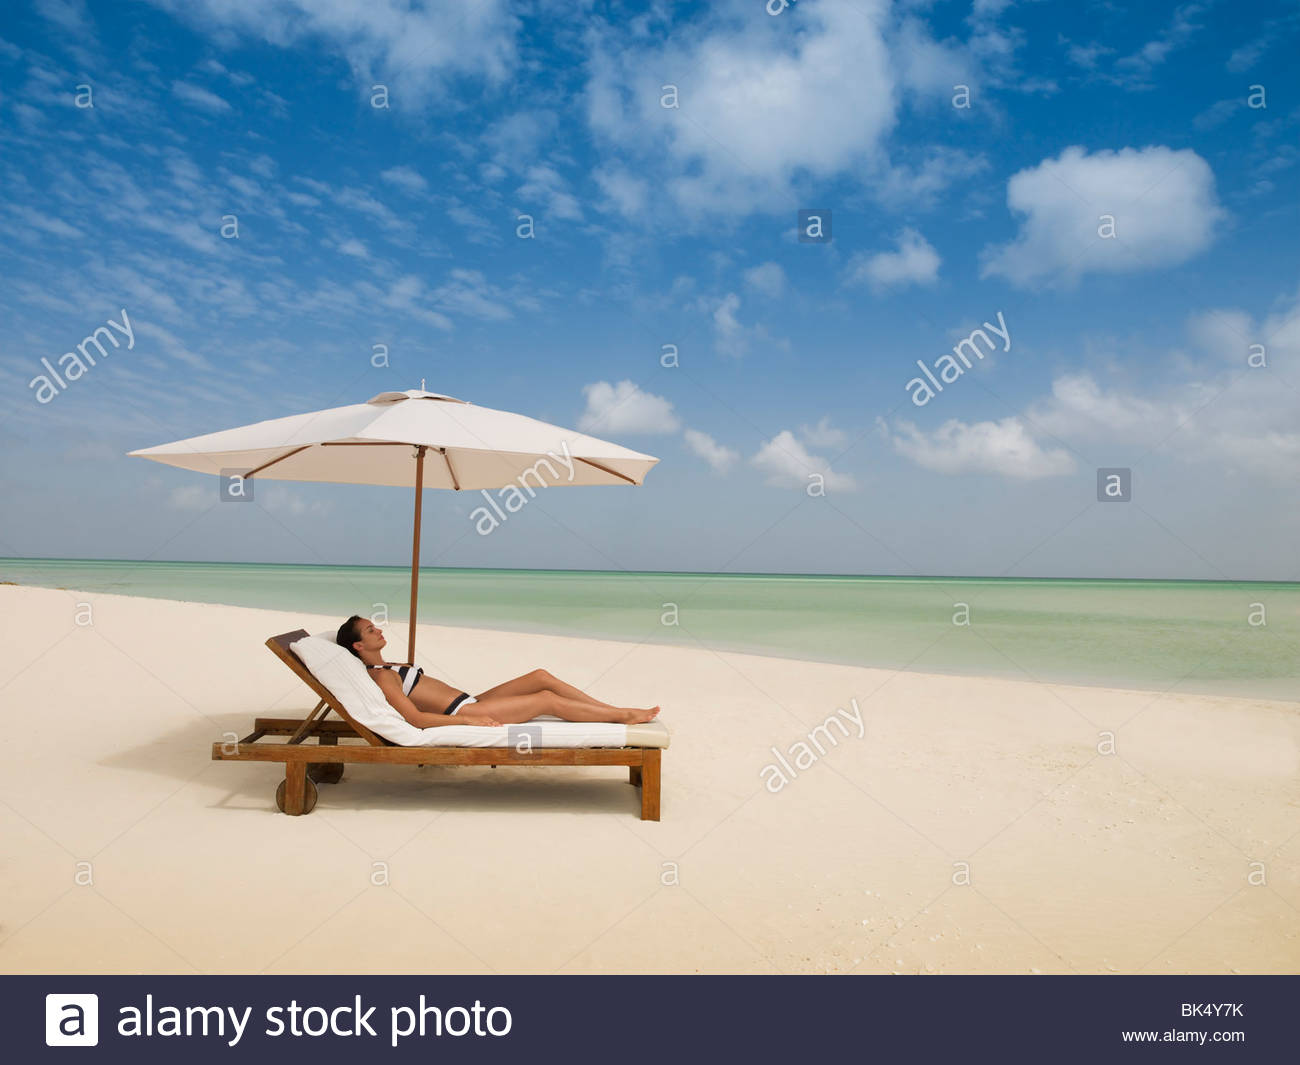 Woman Laying On Lounge Chair Under Beach Umbrella